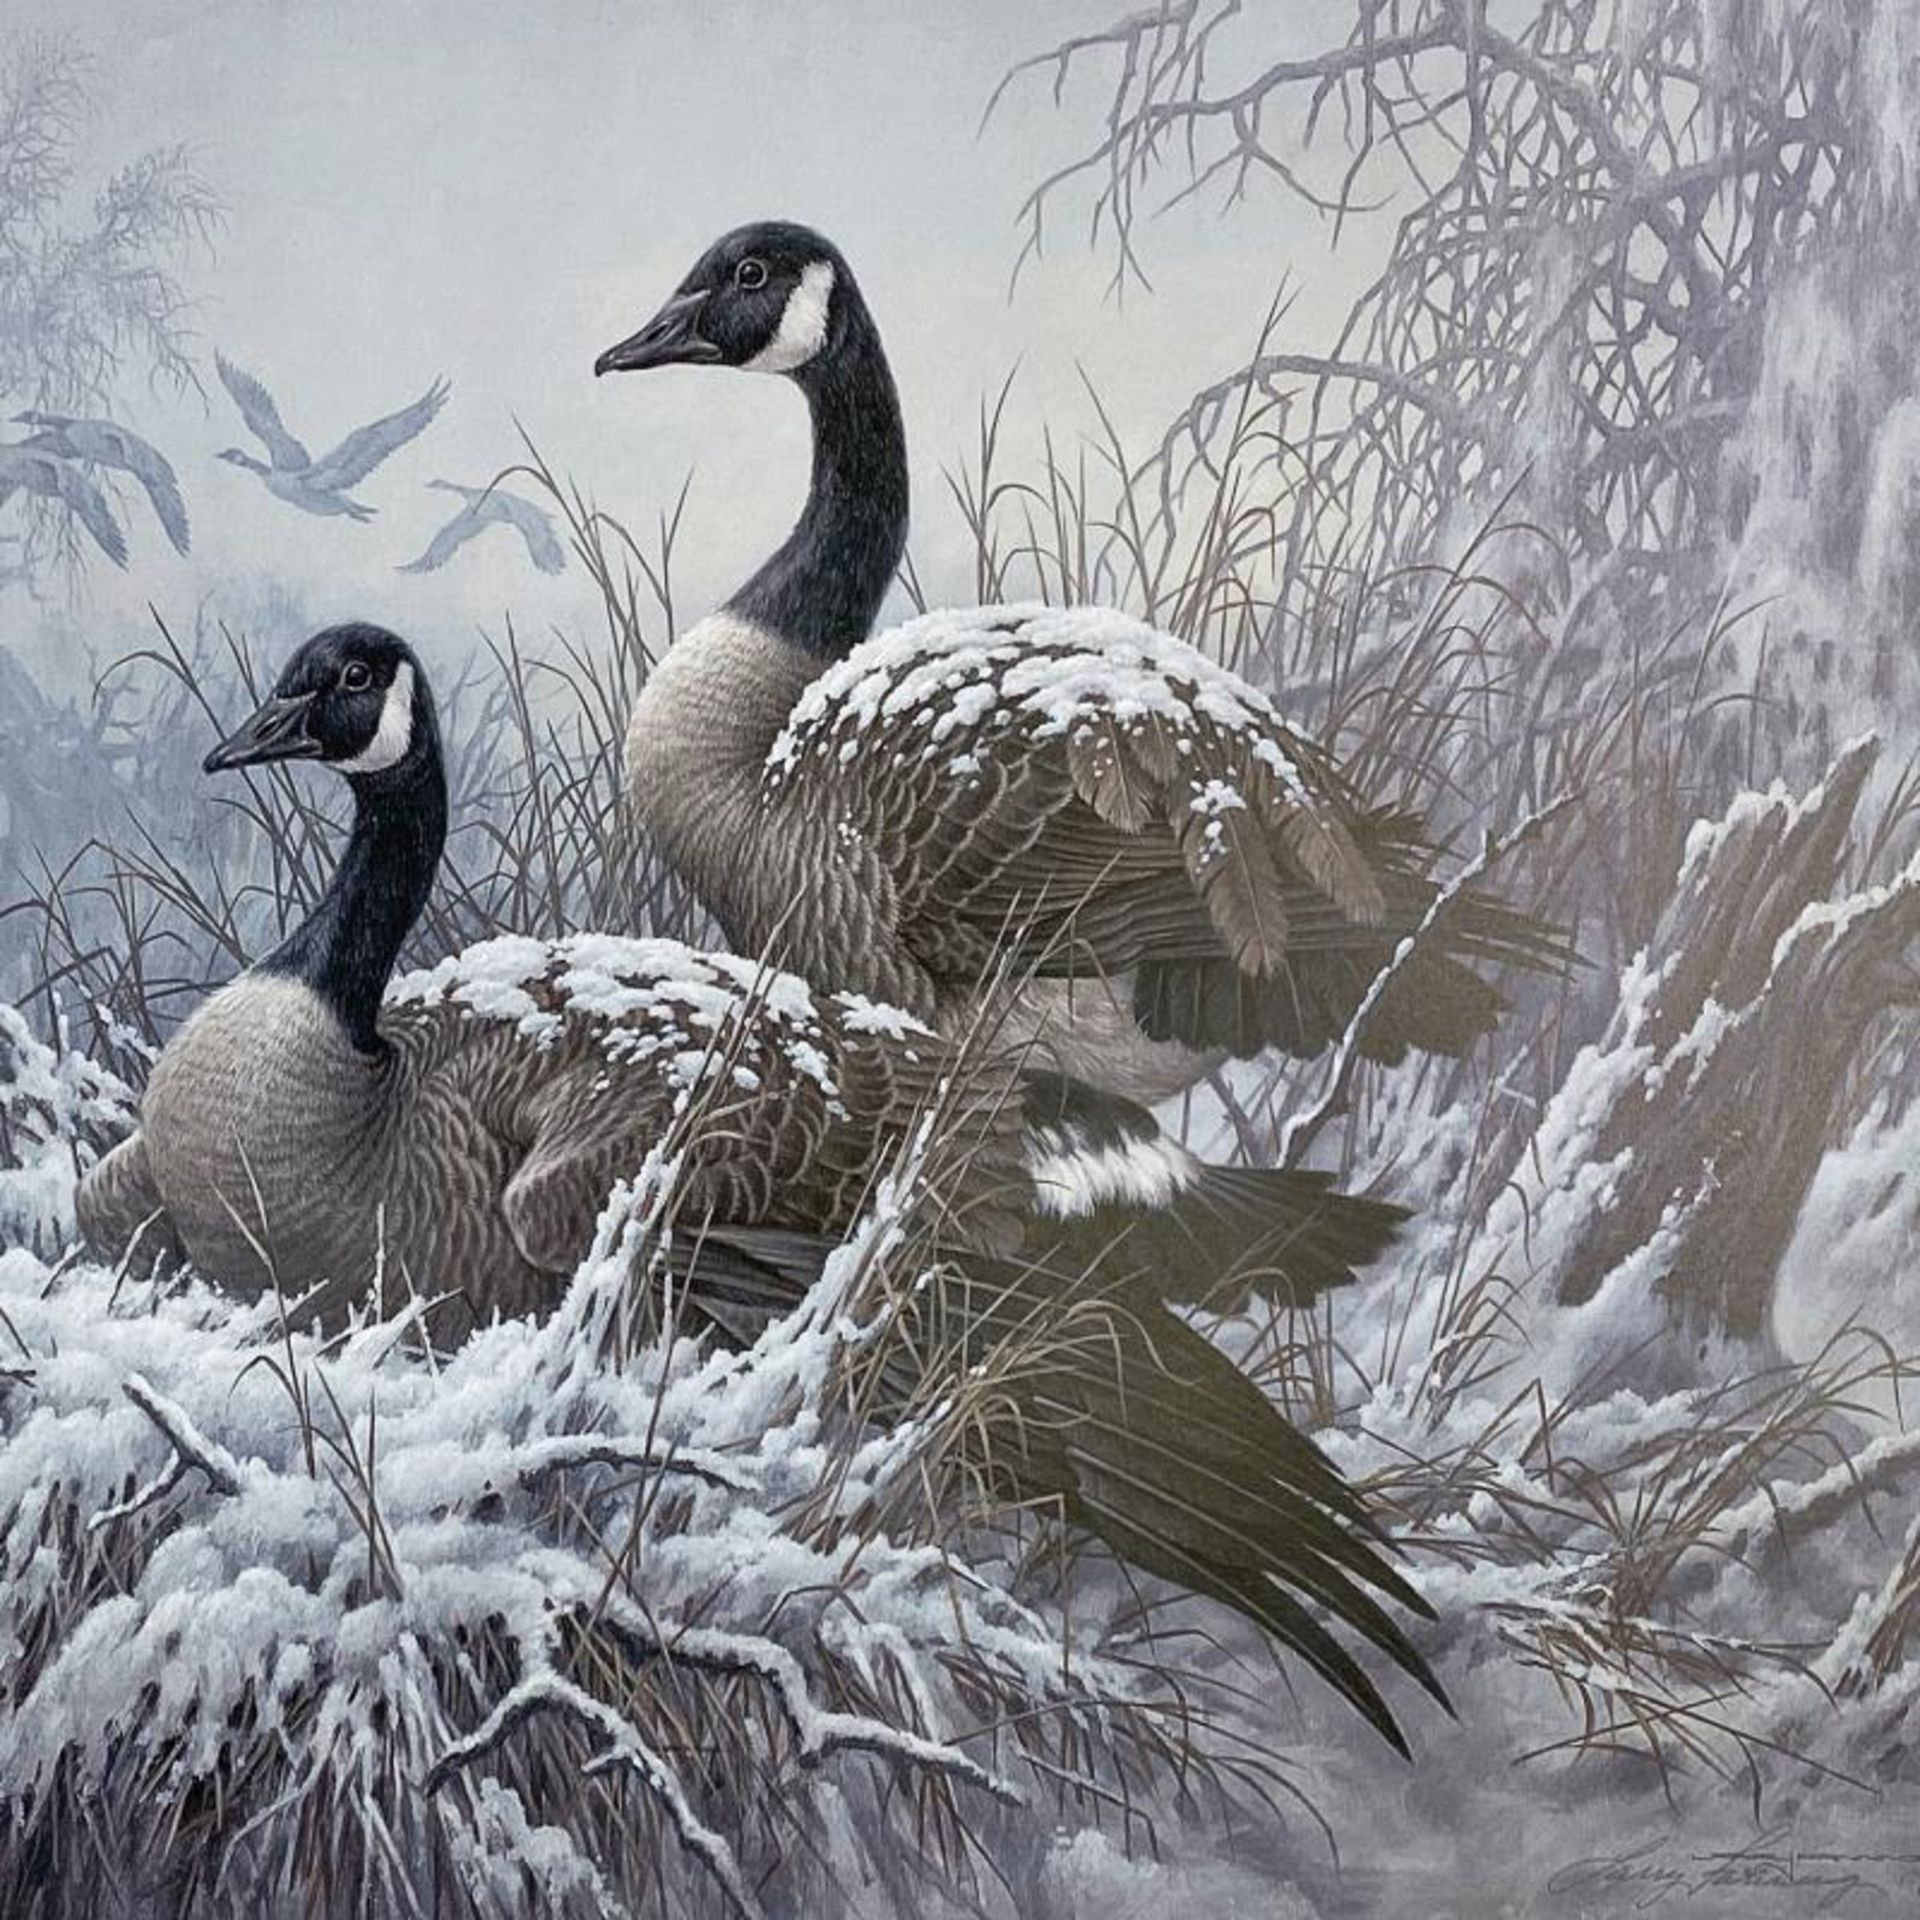 """Larry Fanning (1938-2014), """"April Snow - Canada Geese"""" Limited Edition Lithograp - Image 2 of 2"""